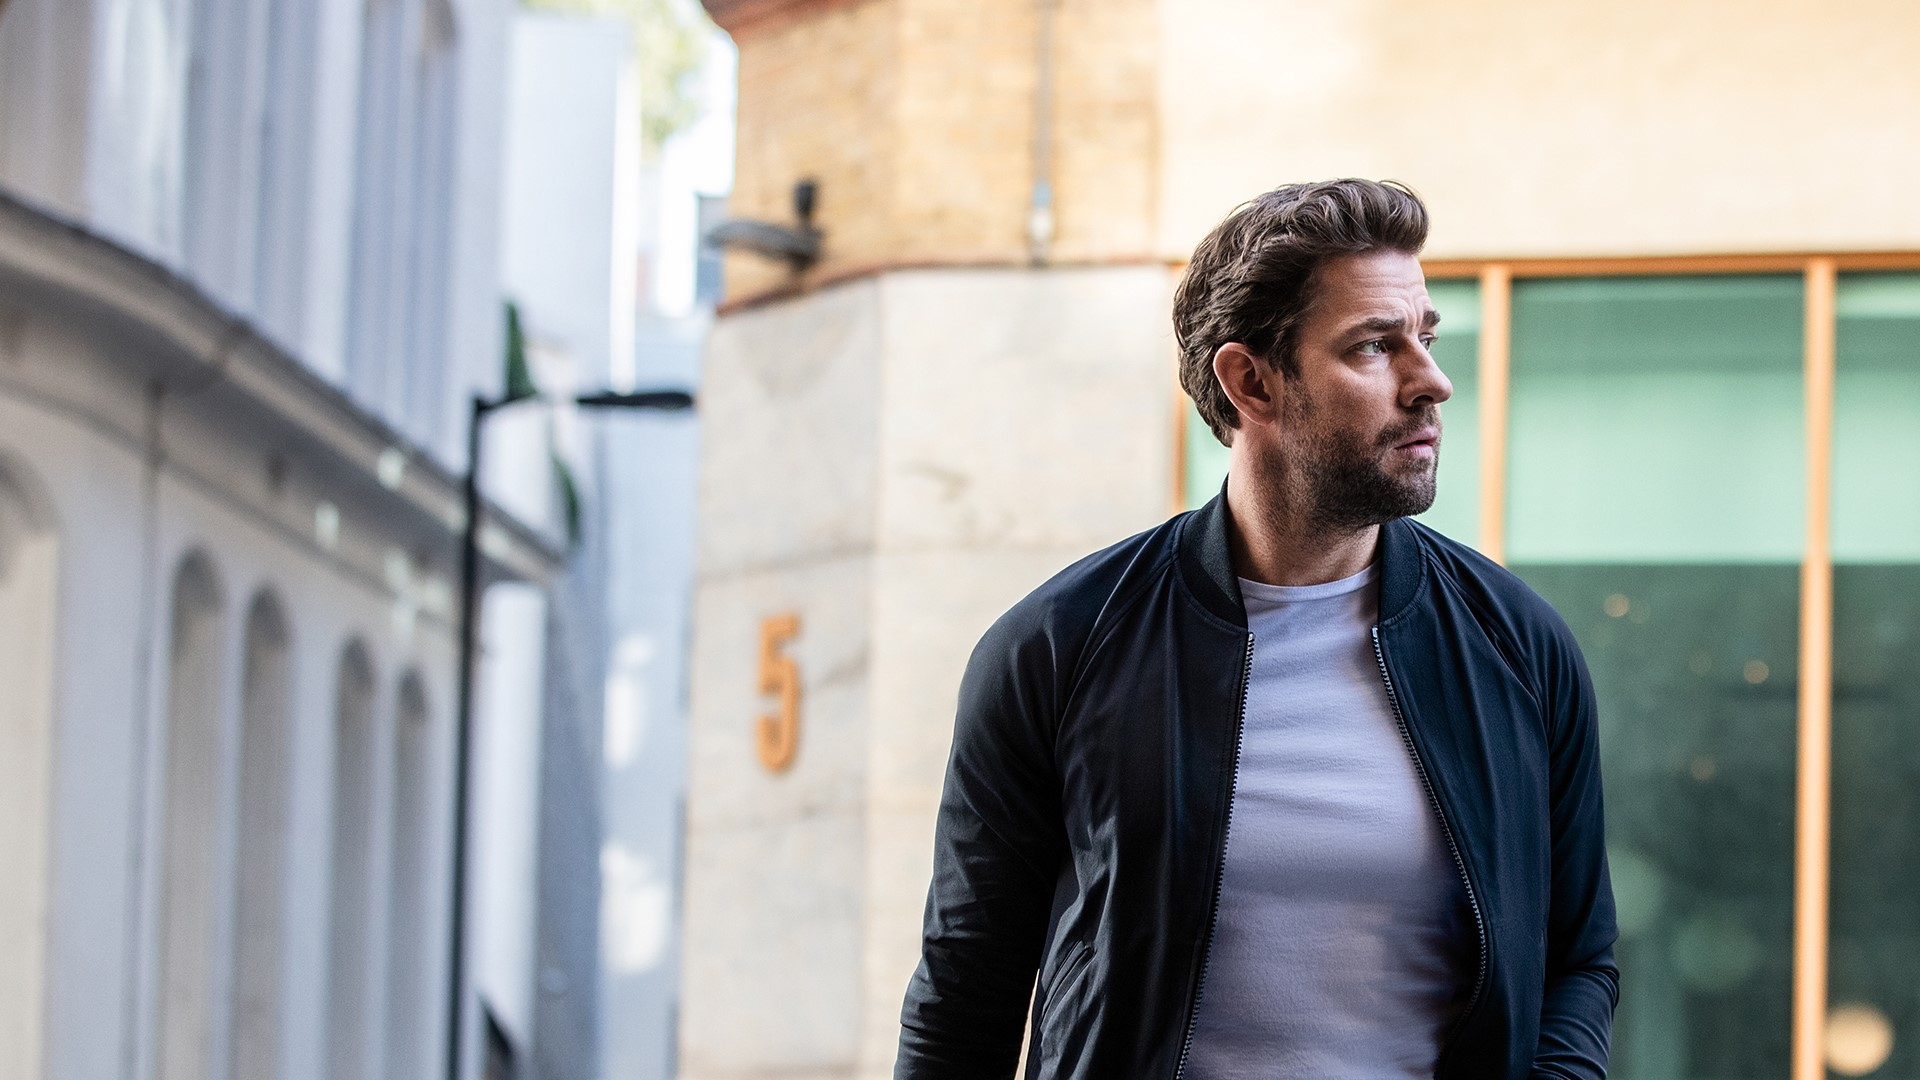 Jack Ryan Season 3 Release Date Delayed to 2021, New Cast and Plot Details are Leaked